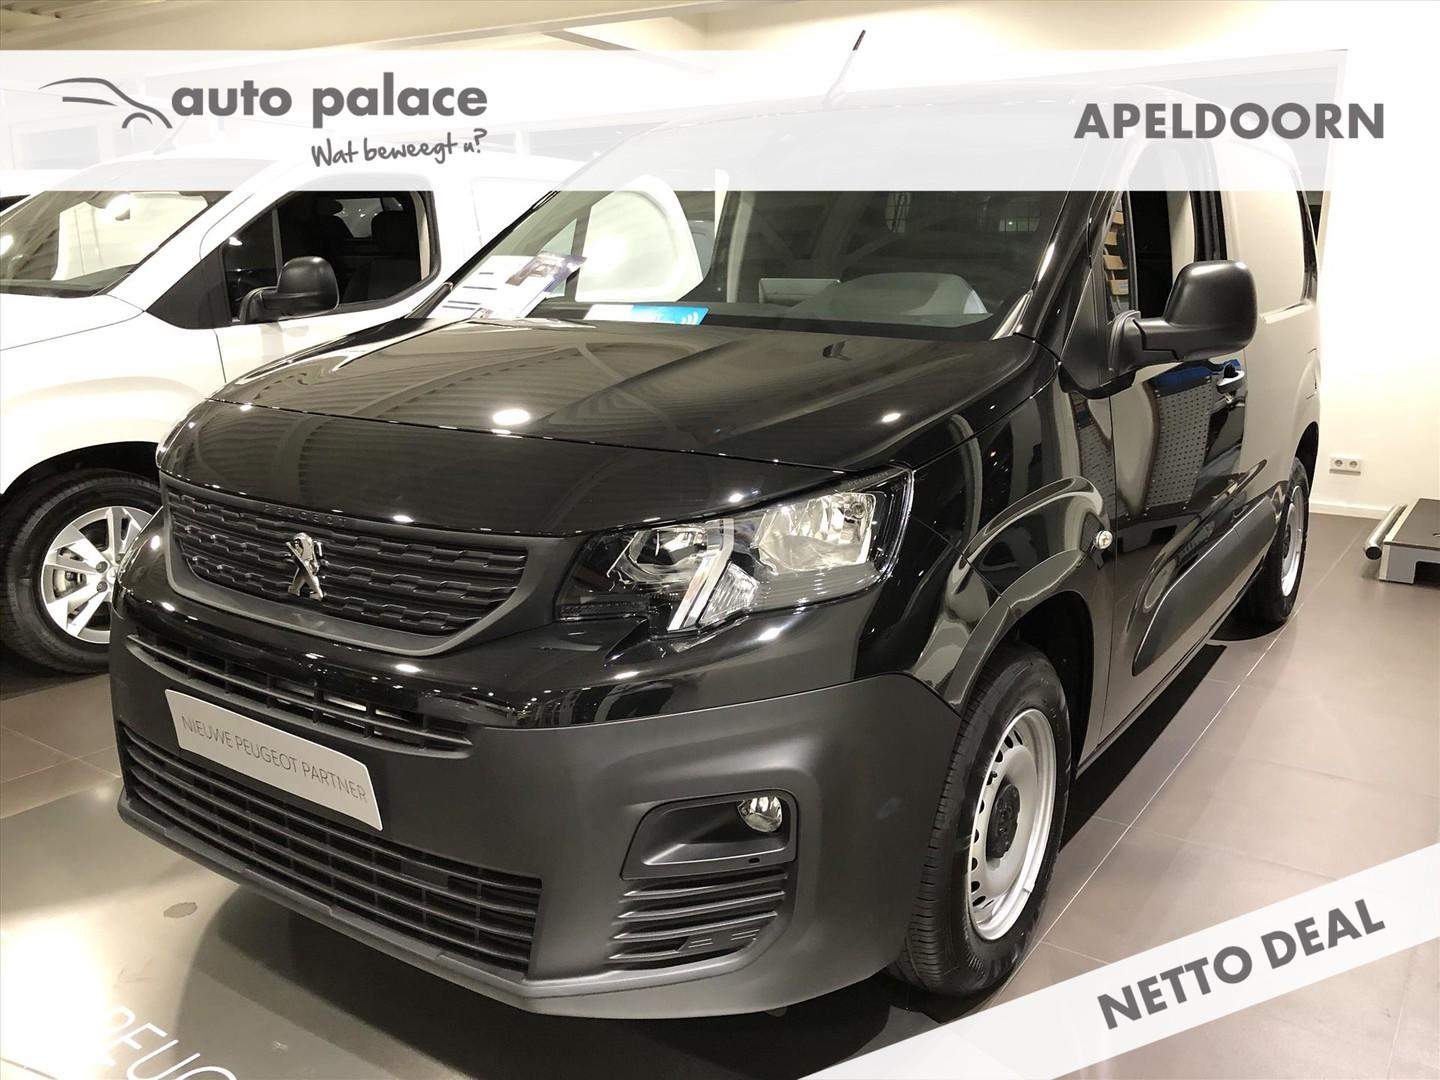 Peugeot Partner 1.5 75pk 650kg premium netto deal!